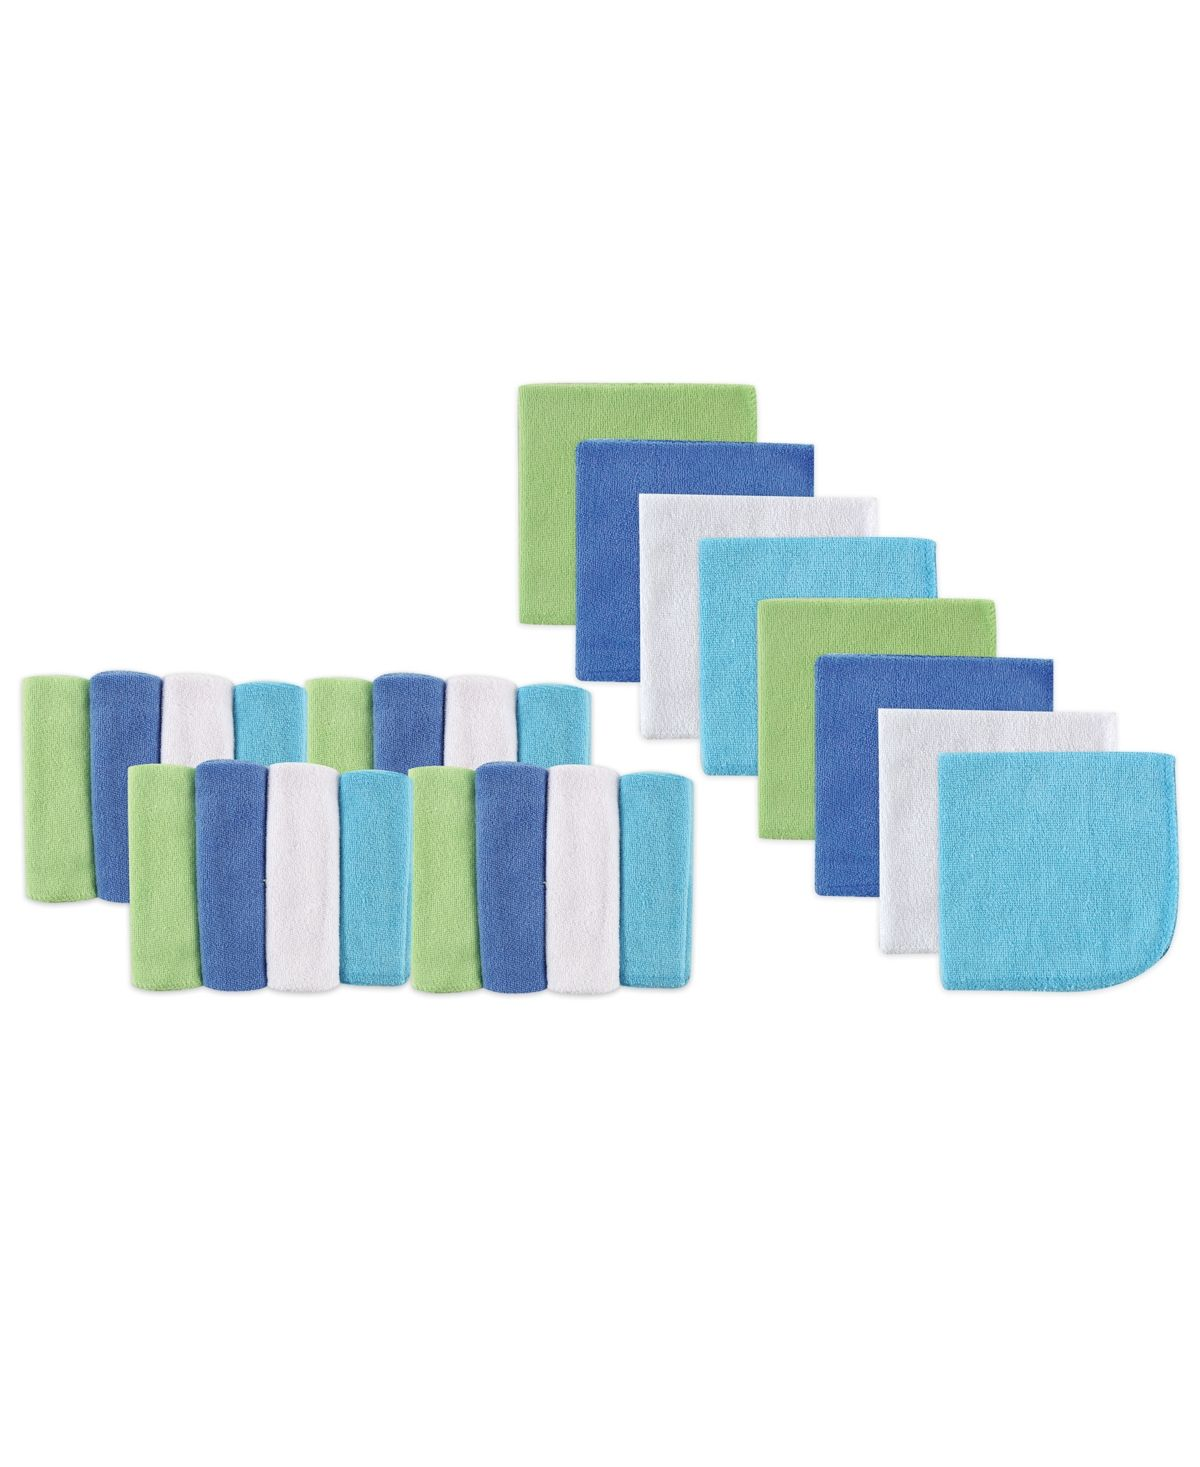 Luvable Friends Washcloths 24 Pack Blue One Size Reviews All Kids Accessories Kids Macy S Washing Clothes Baby Washcloth Baby Vision